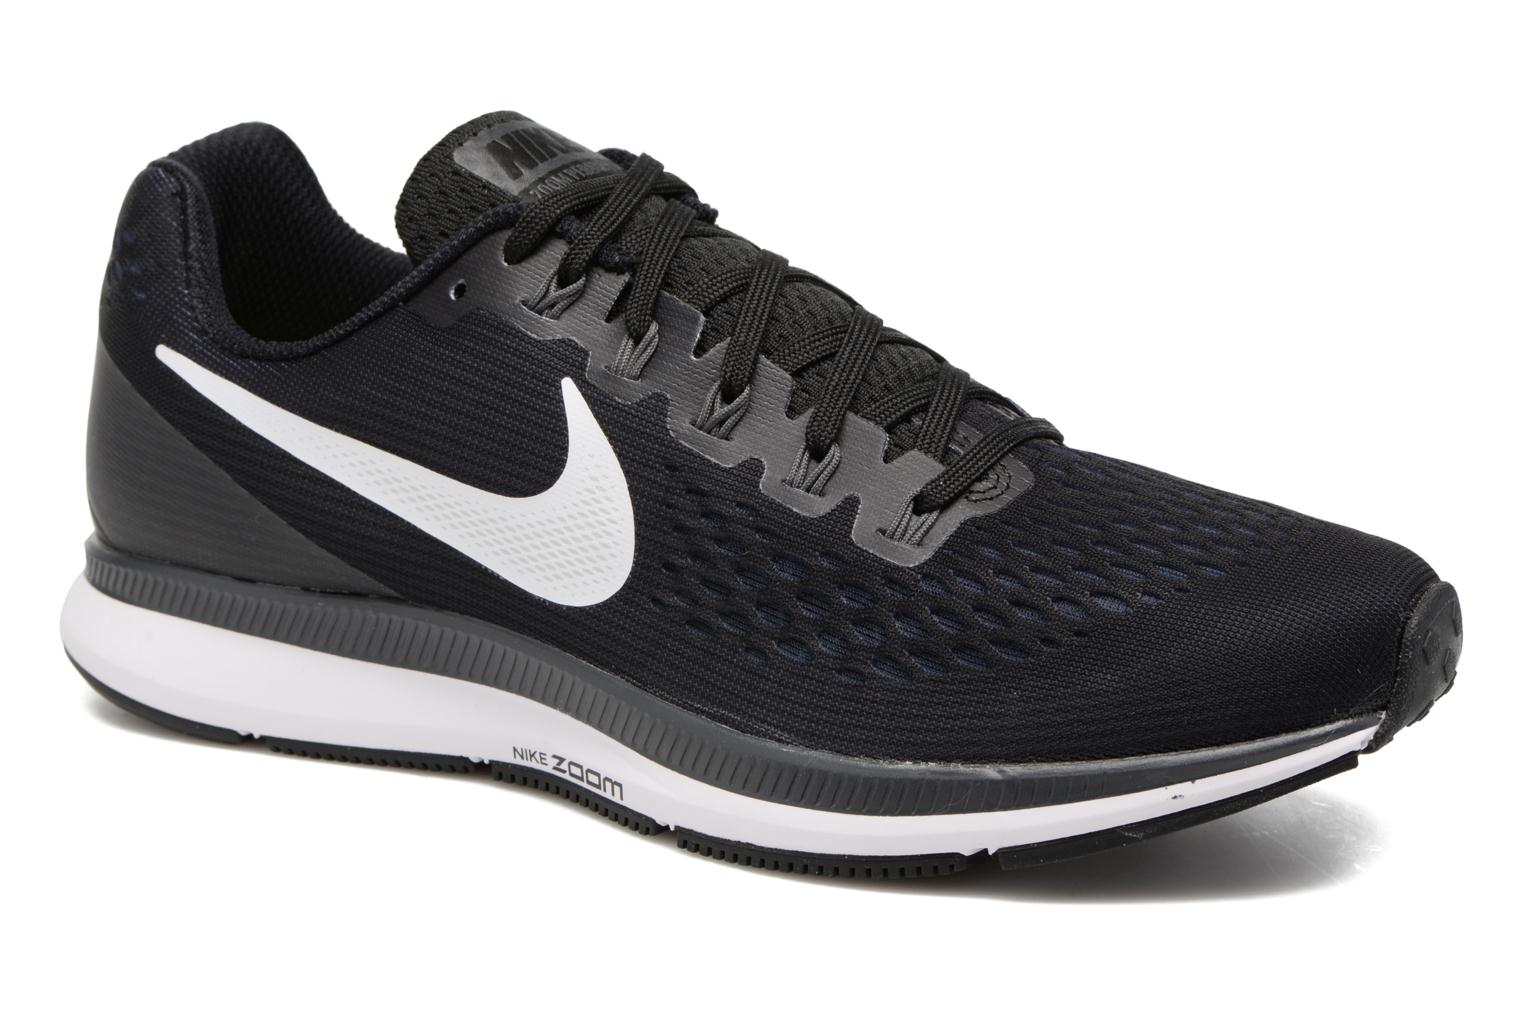 Nike Air Zoom Pegasus 34 BLACK/WHITE-DARK GREY-ANTHRACITE